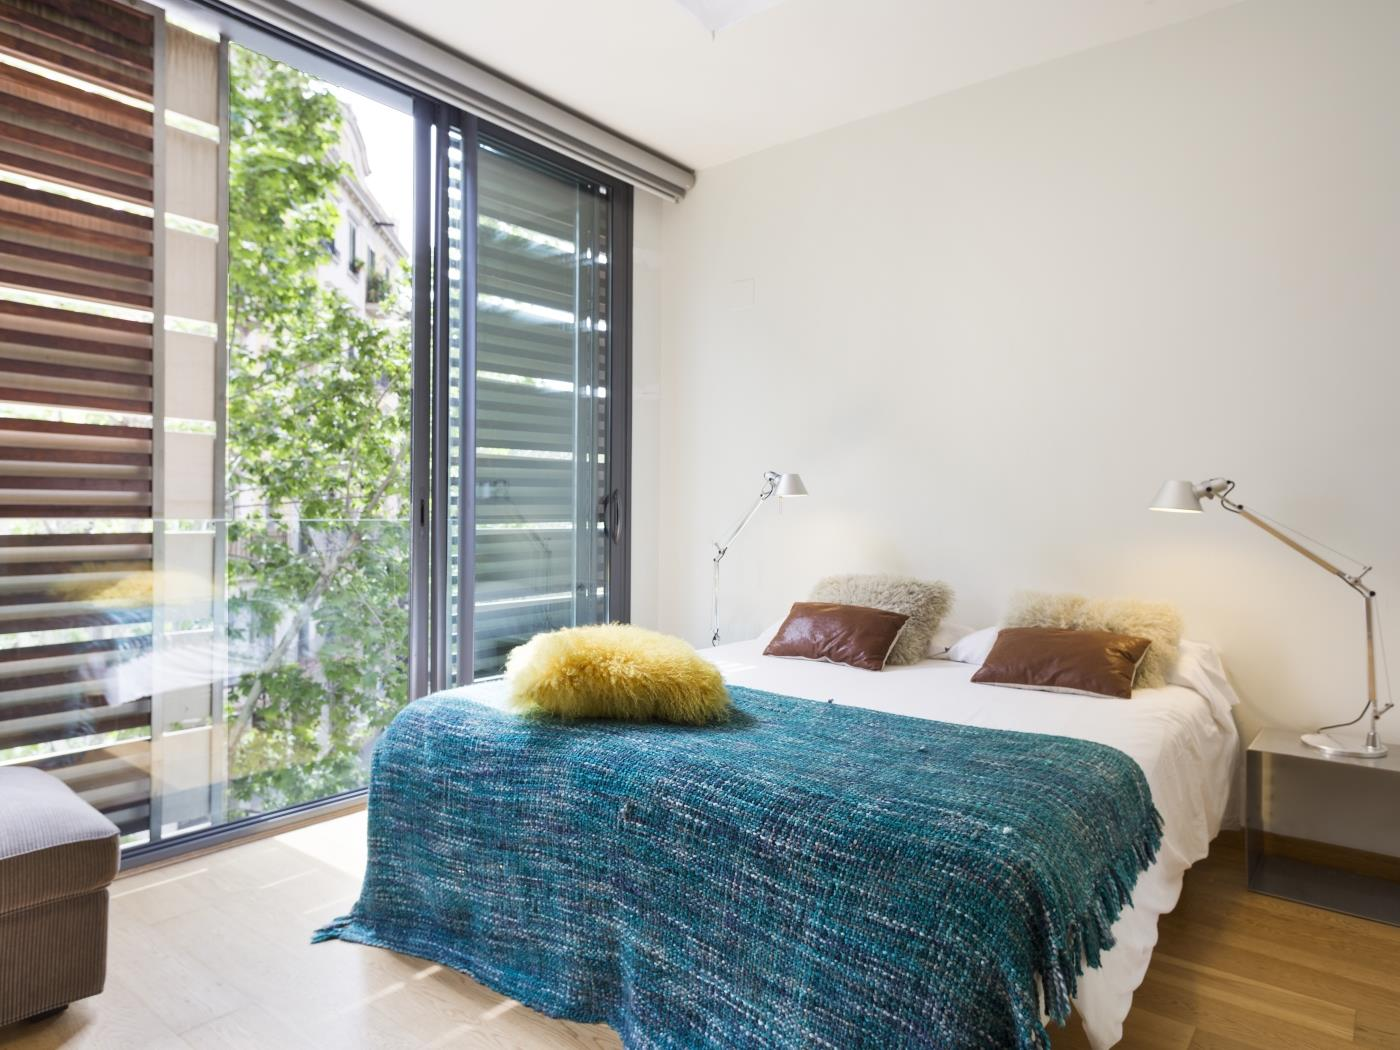 Rooftop pool Apartment in Barcelona Center - My Space Barcelona Aпартаменты